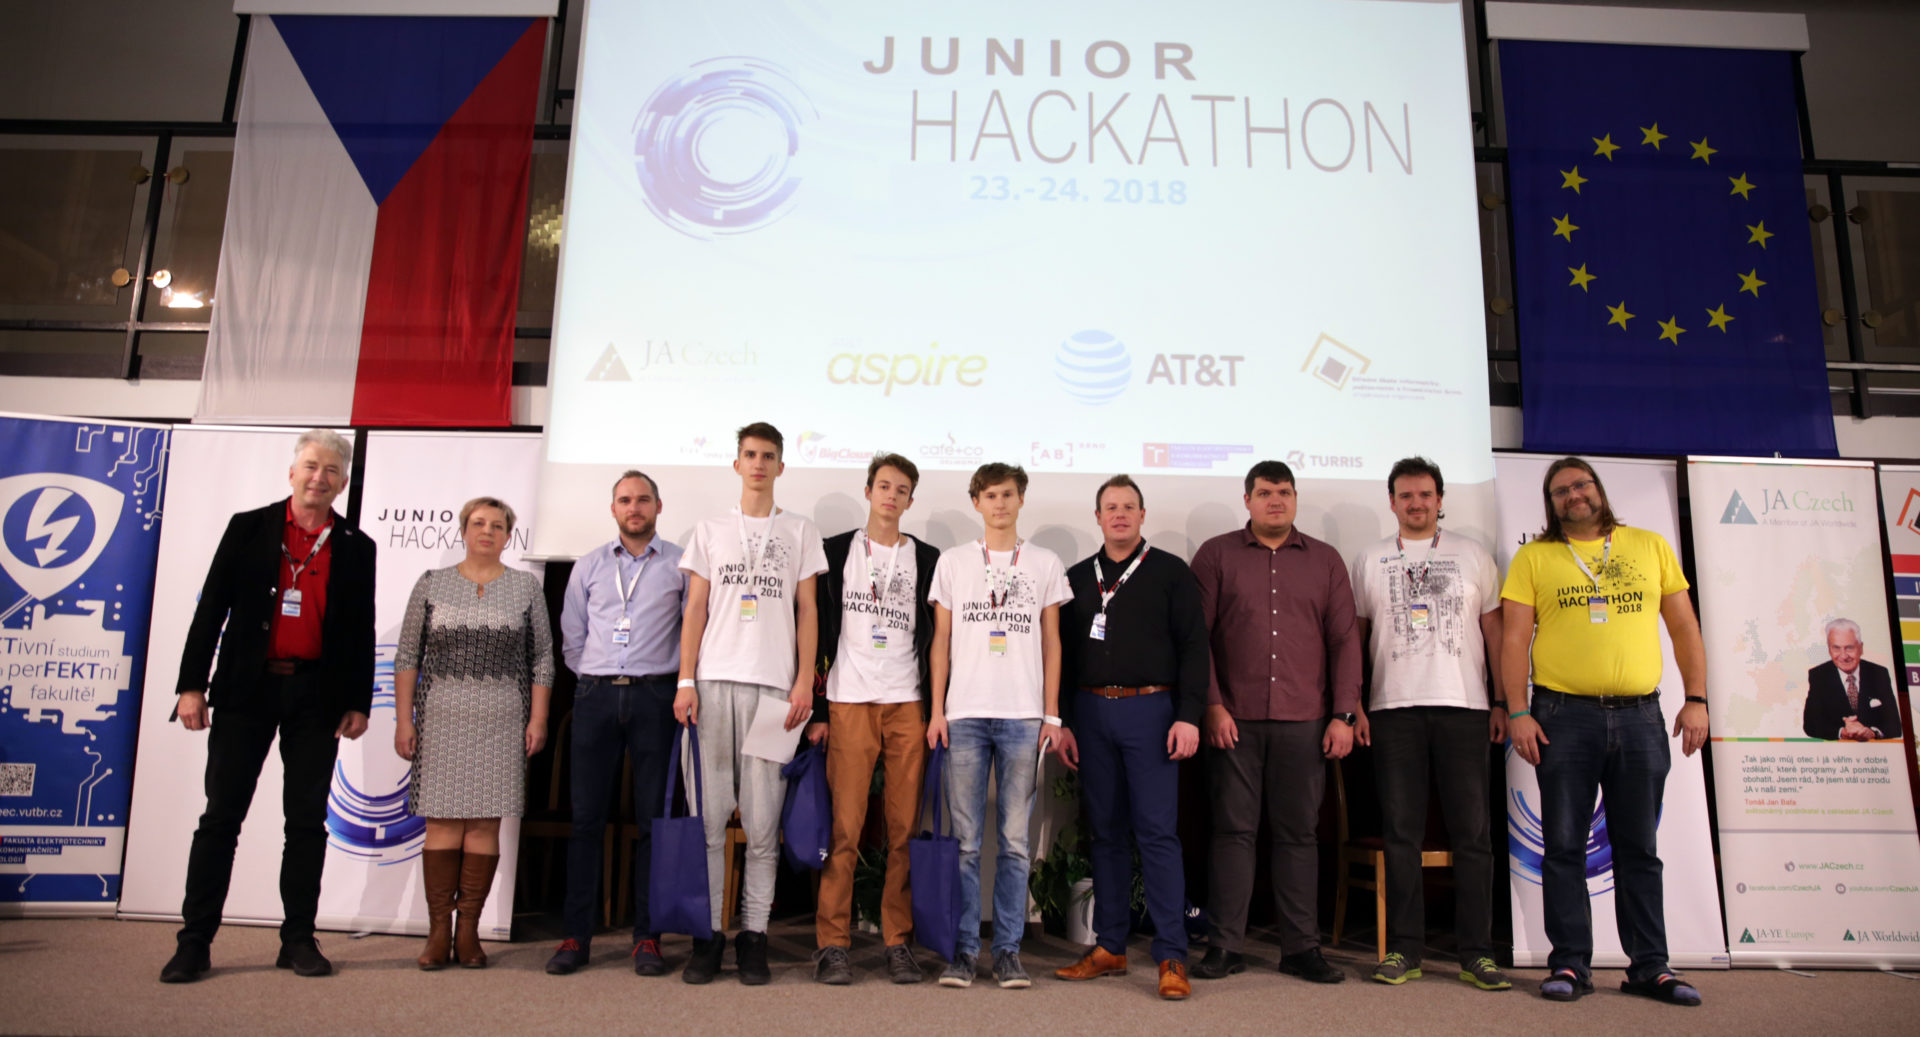 Junior Hackathon Brno 2018, Secondary School of Informatics, Postal Services and Finance, Brno